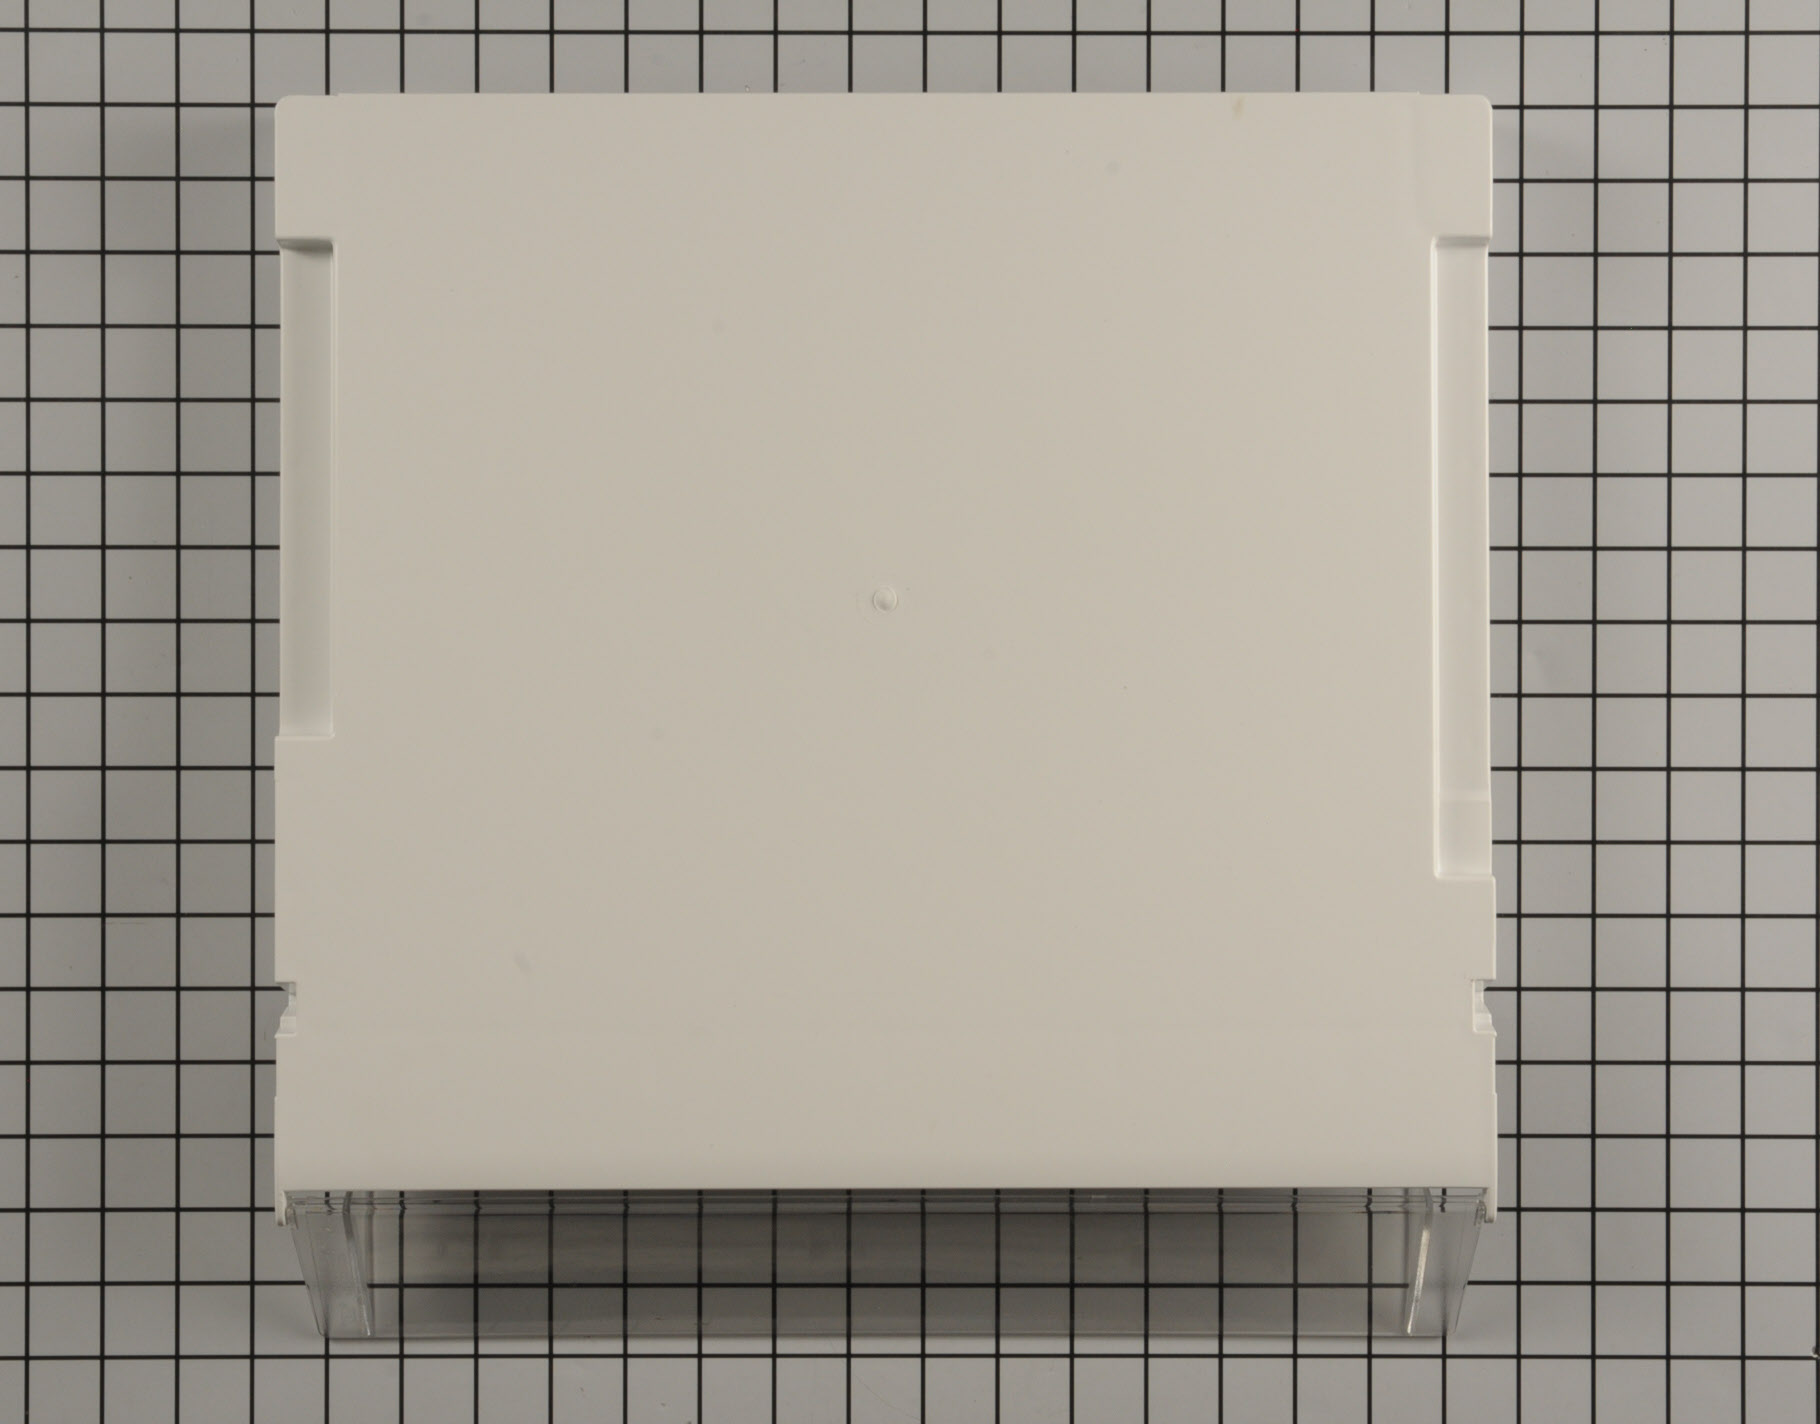 Ikea Refrigerator Part # WPW10270150 - Drawer Cover